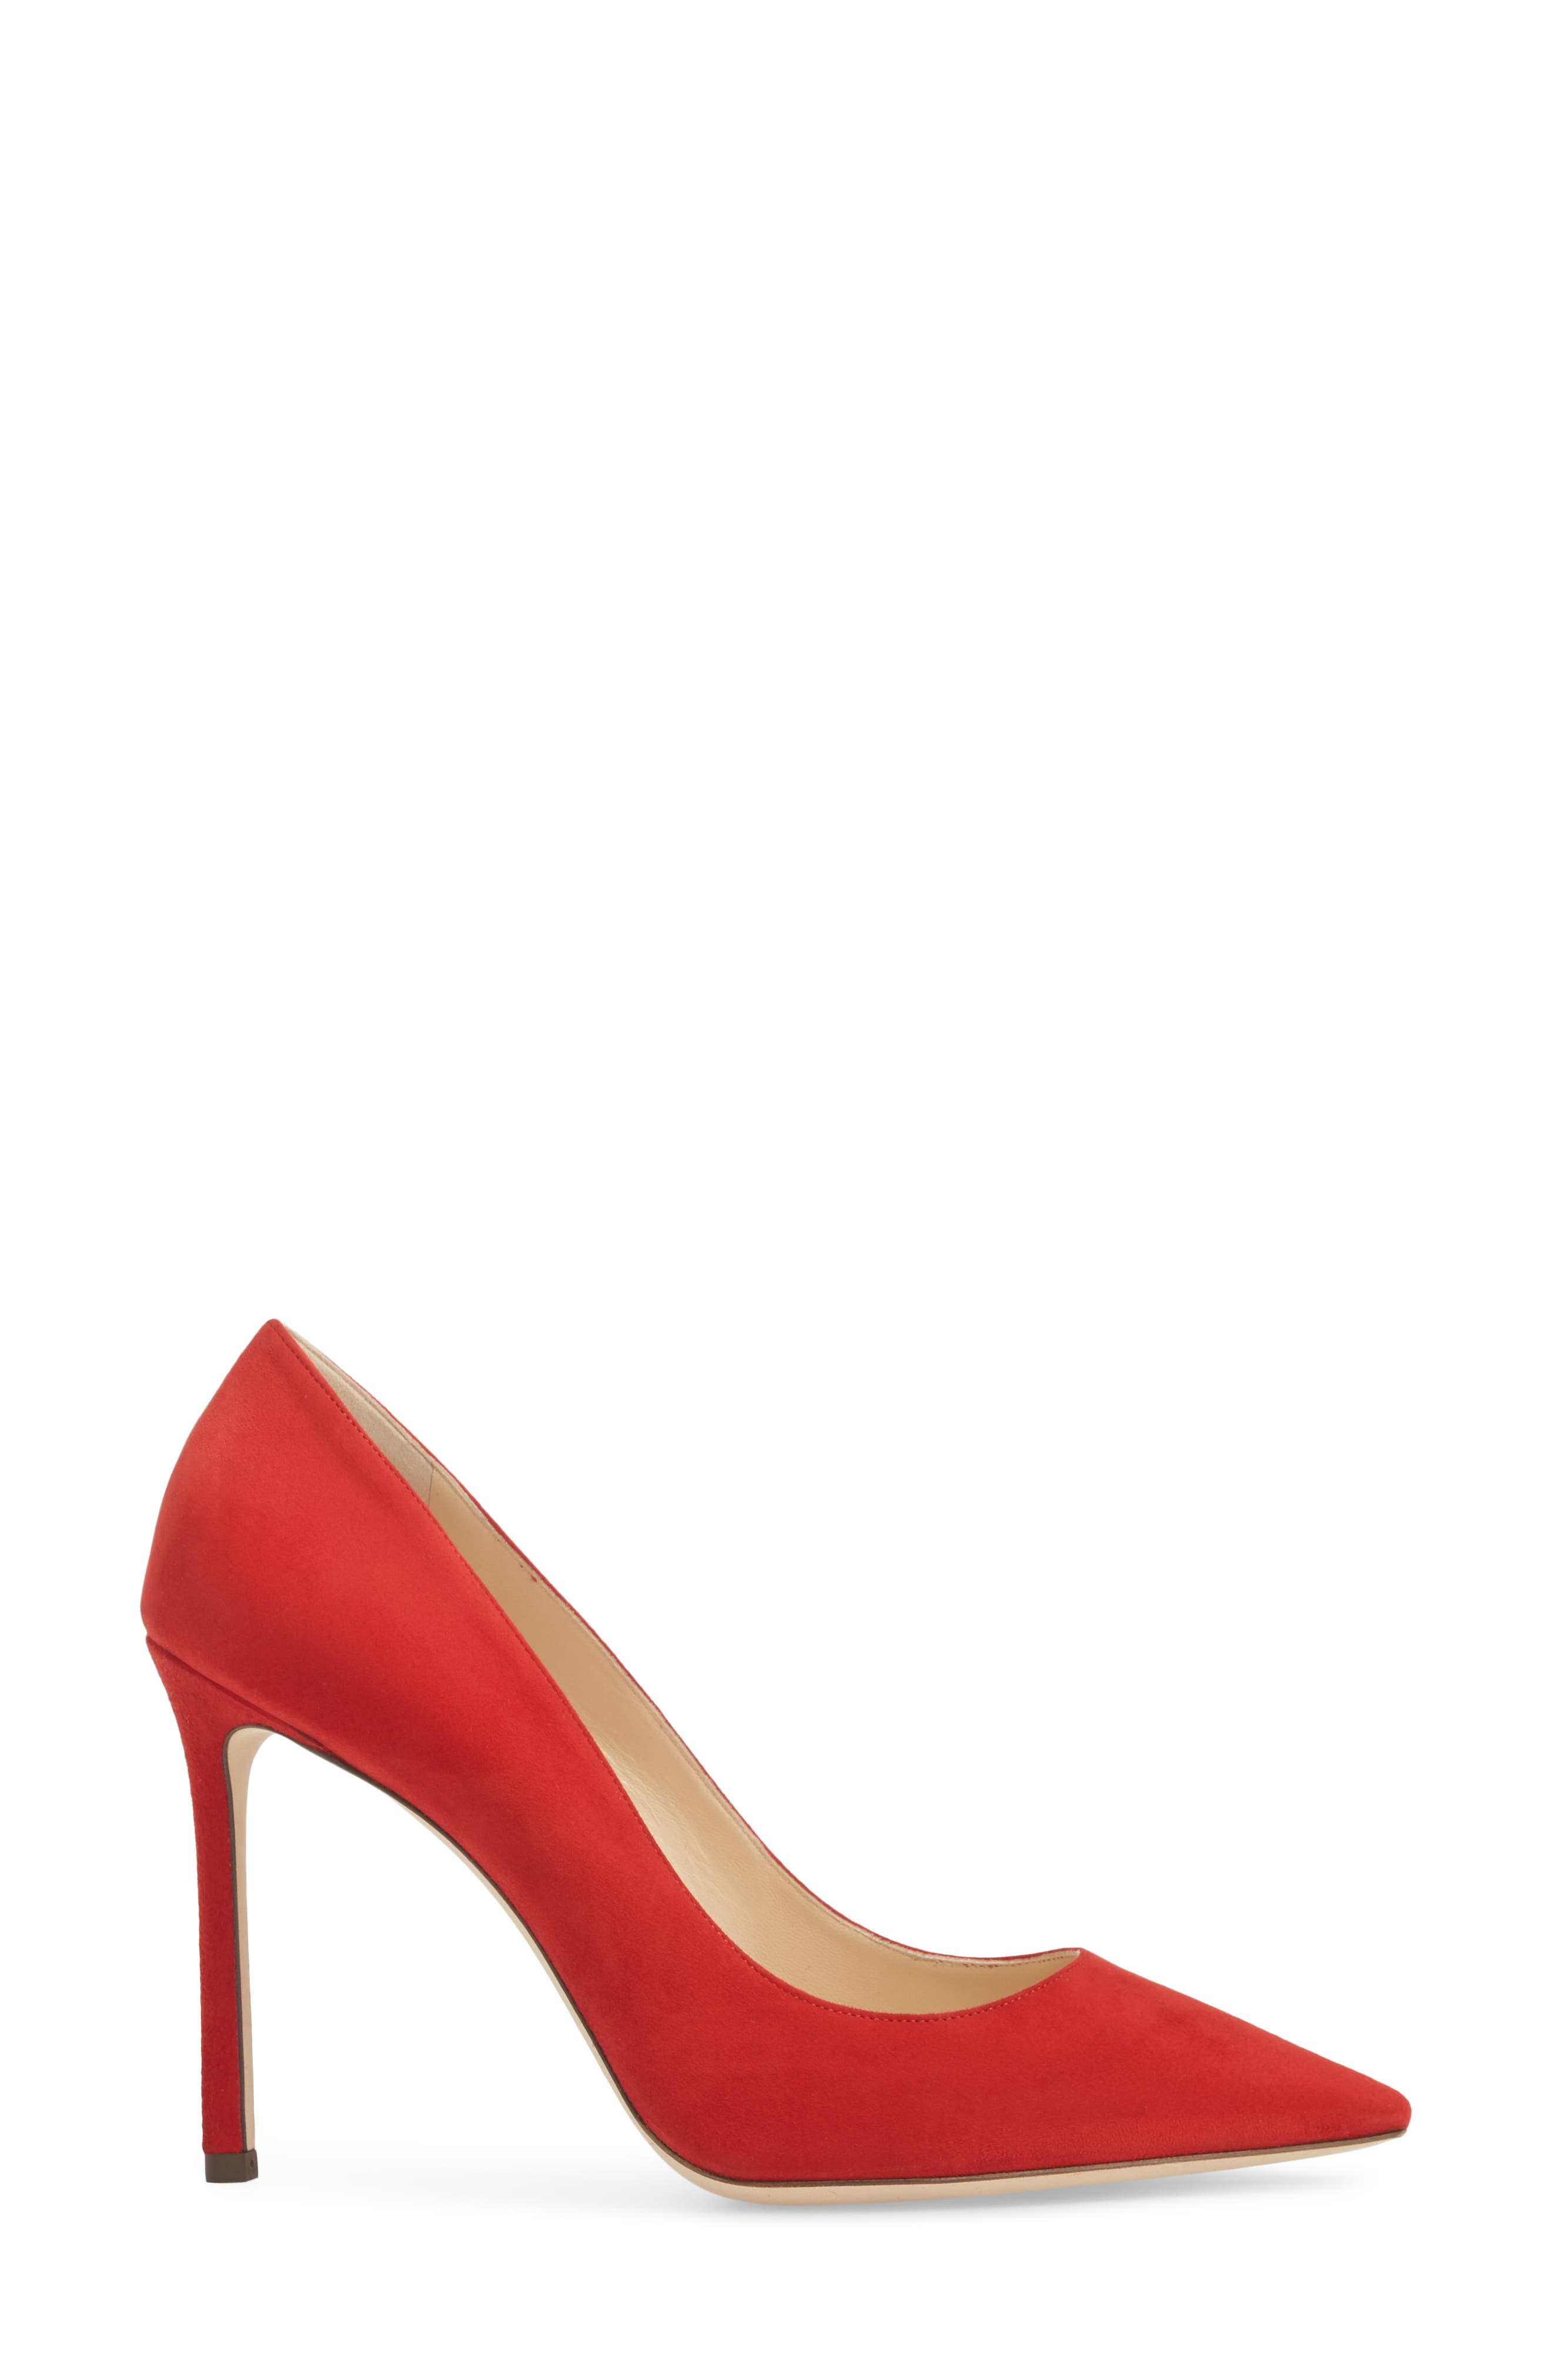 'Romy' Pointy Toe Pump,                             Alternate thumbnail 3, color,                             Red Suede